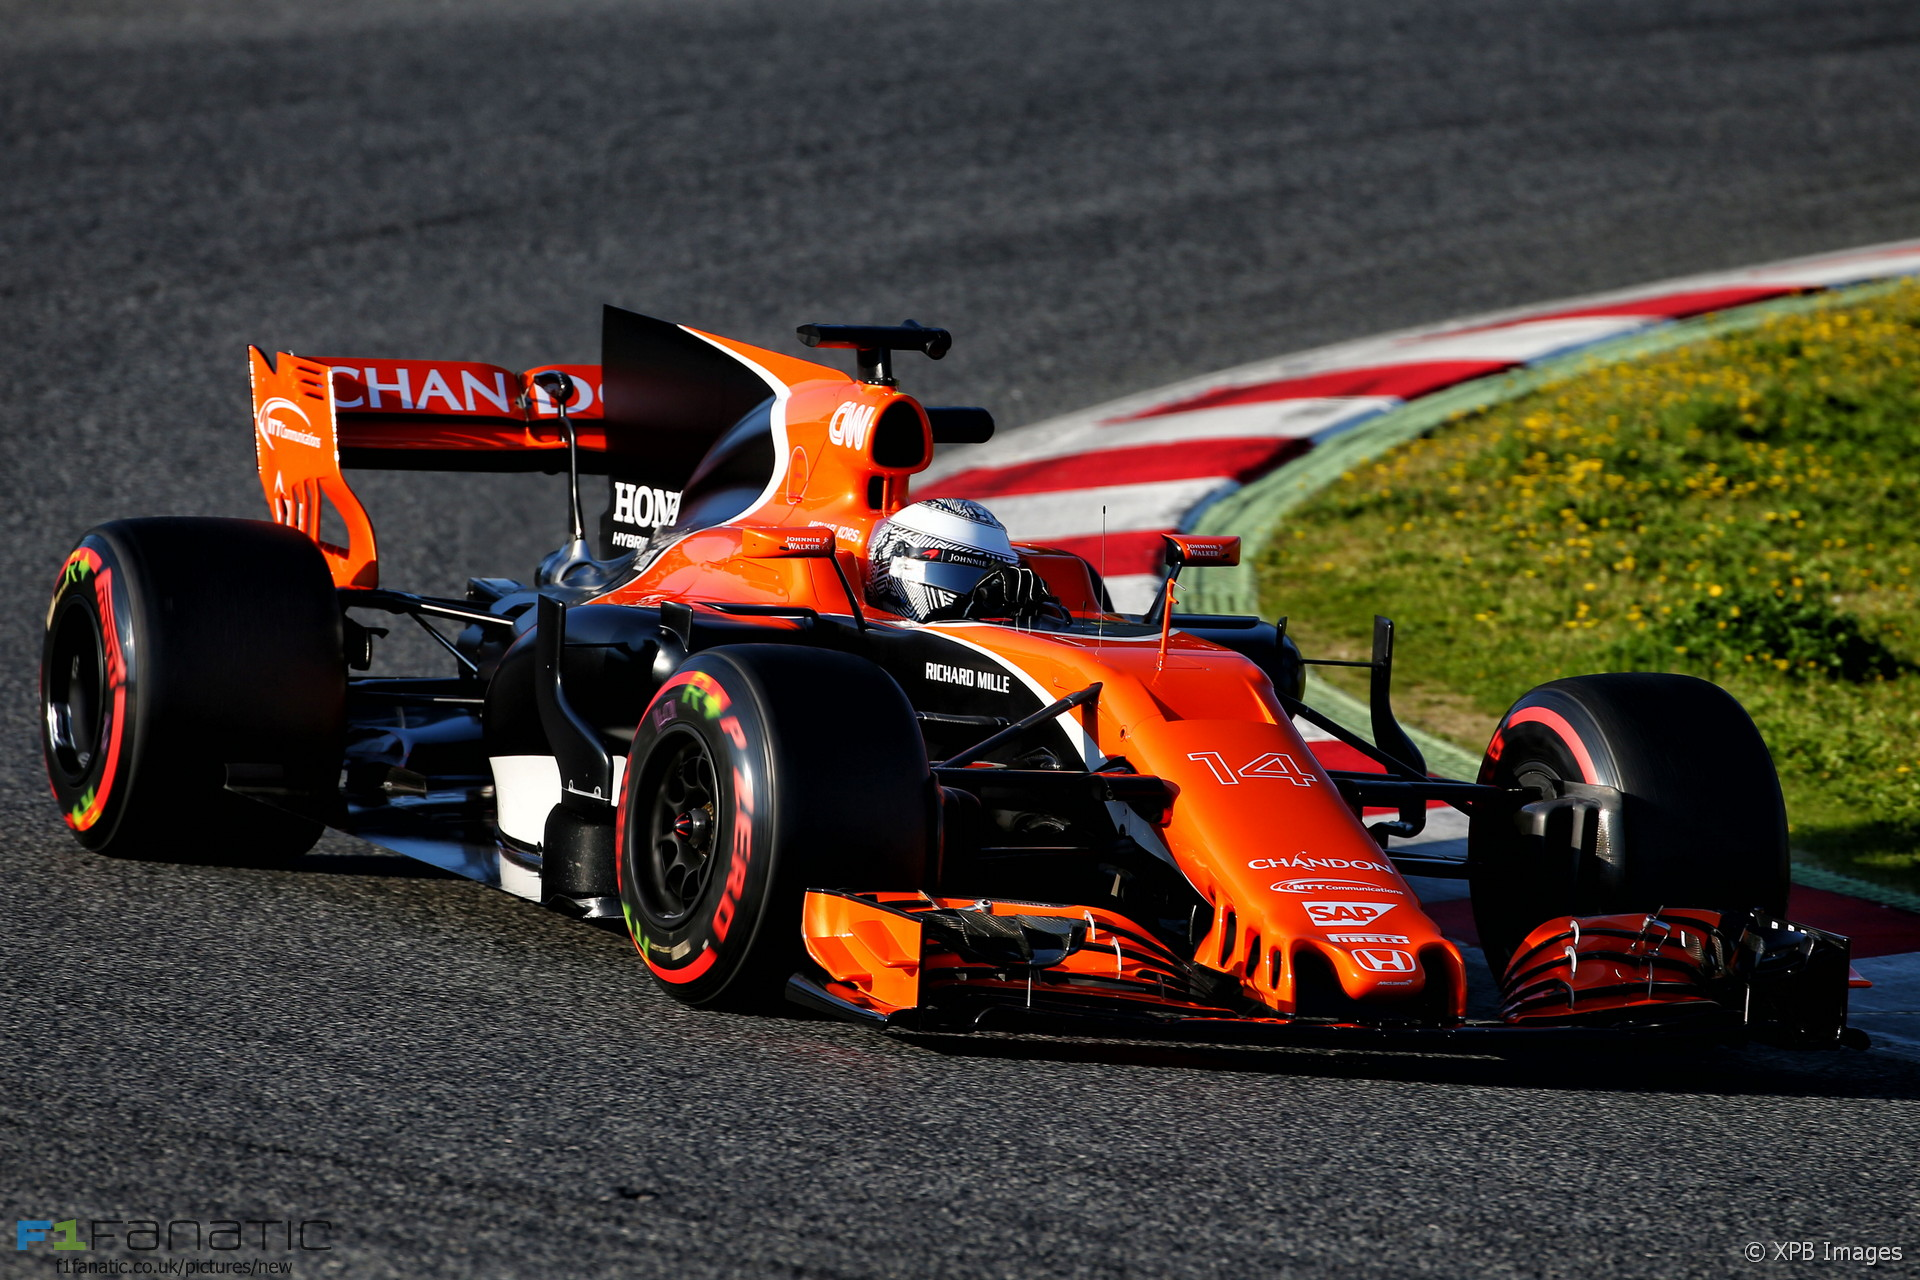 F1 Fanatic round-up: Honda admits engine reliability worries